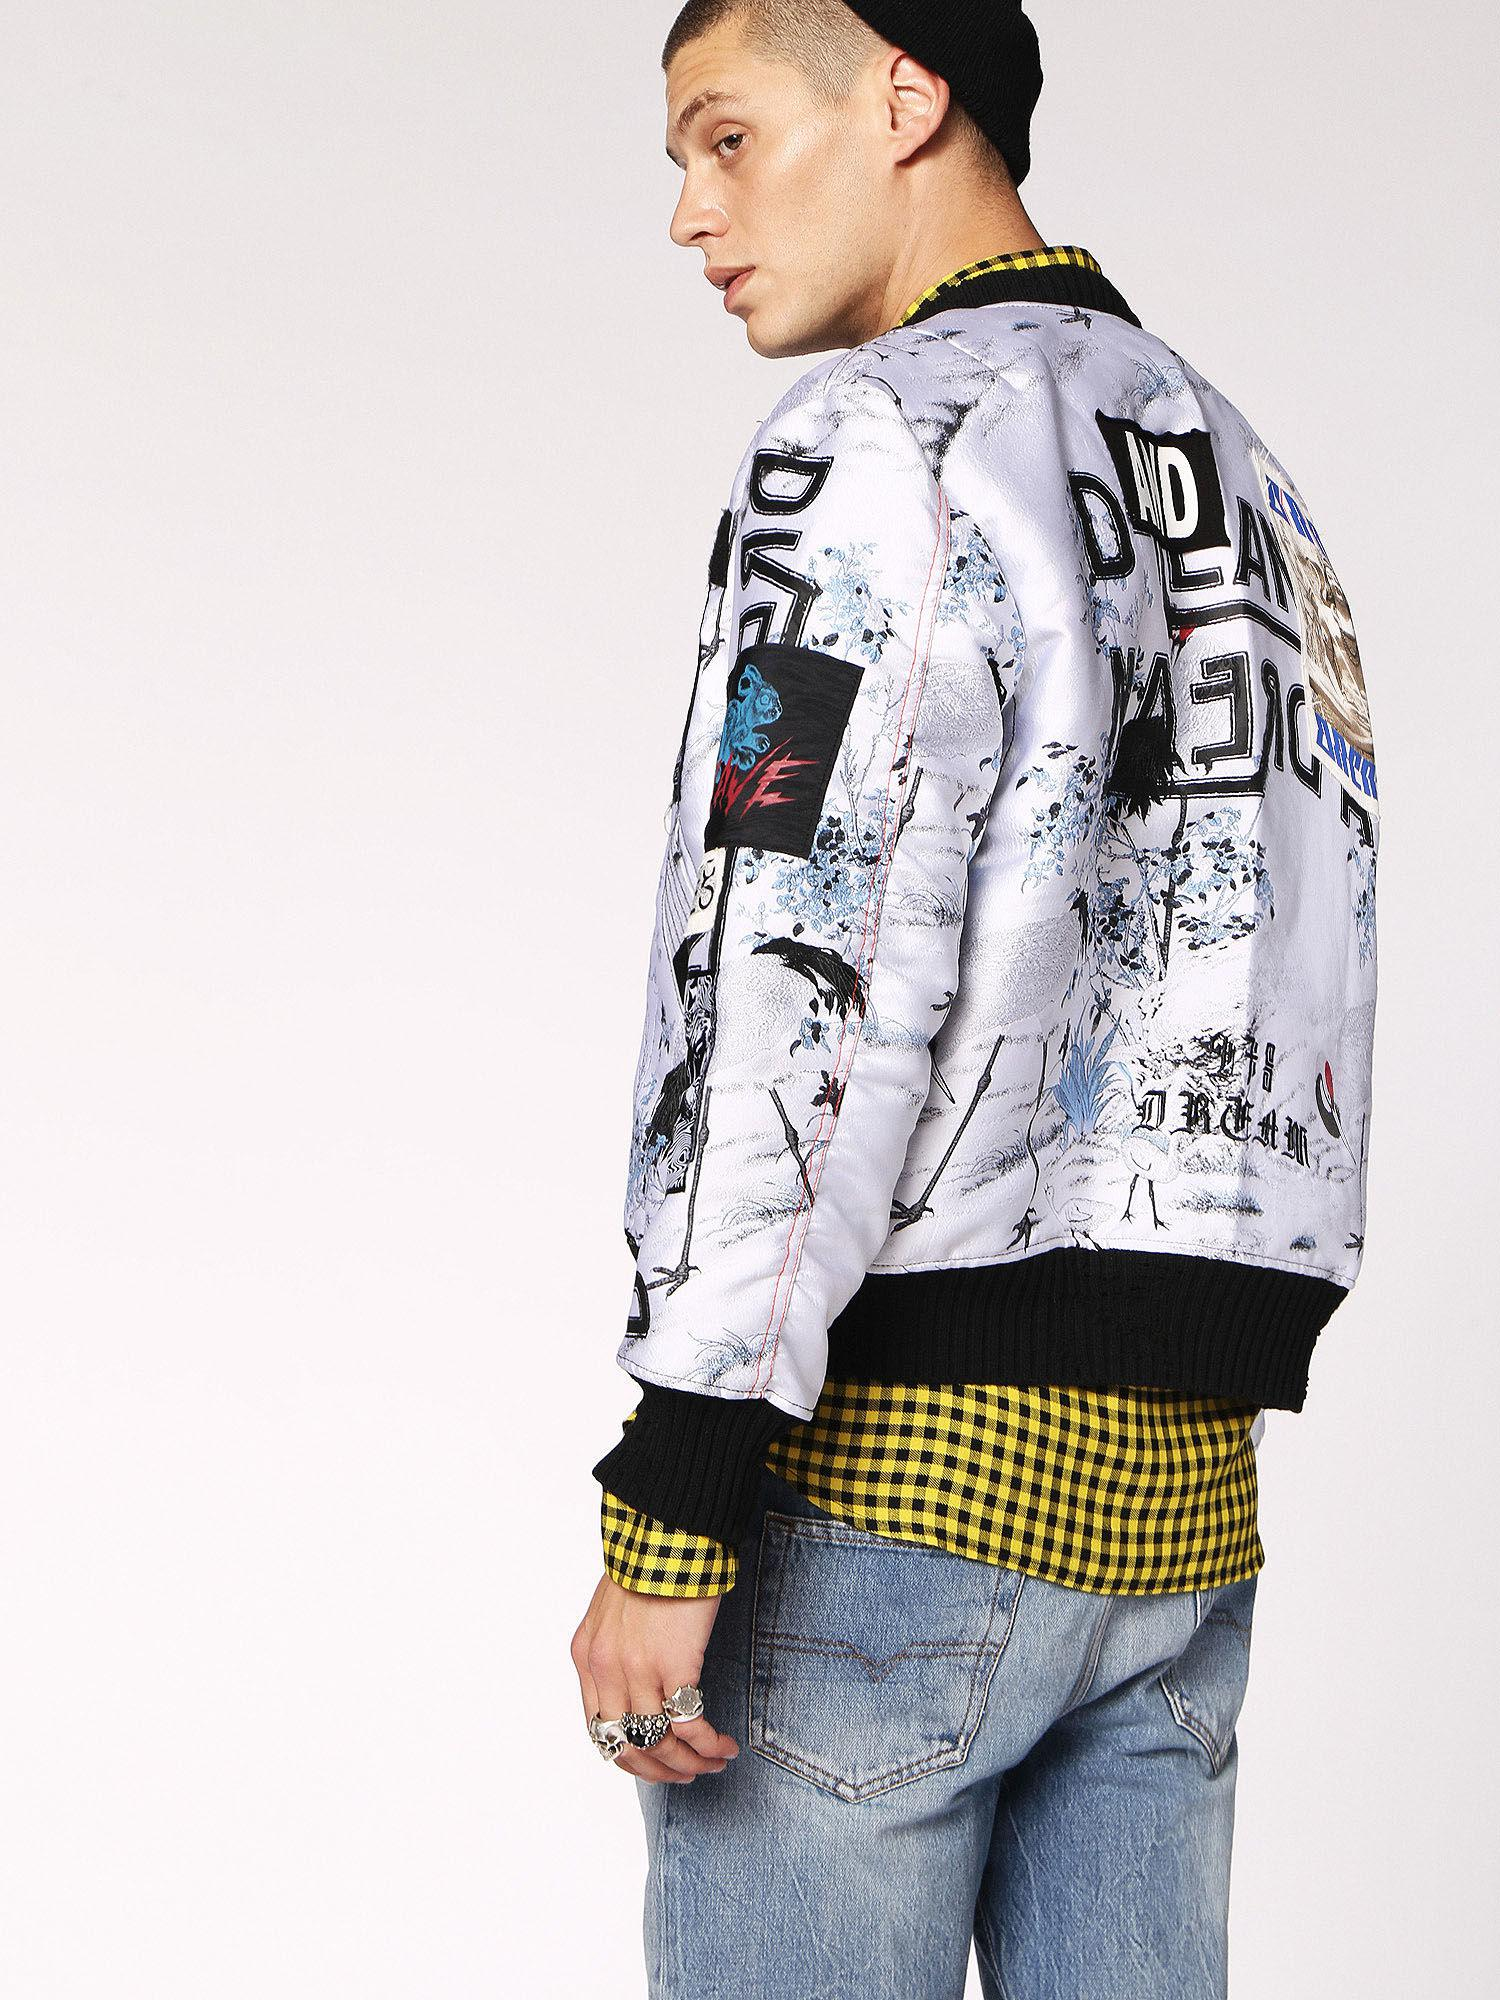 0182c1d7c1 DIESEL Multicolor Jacquard Bomber Jacket With Graphic for men